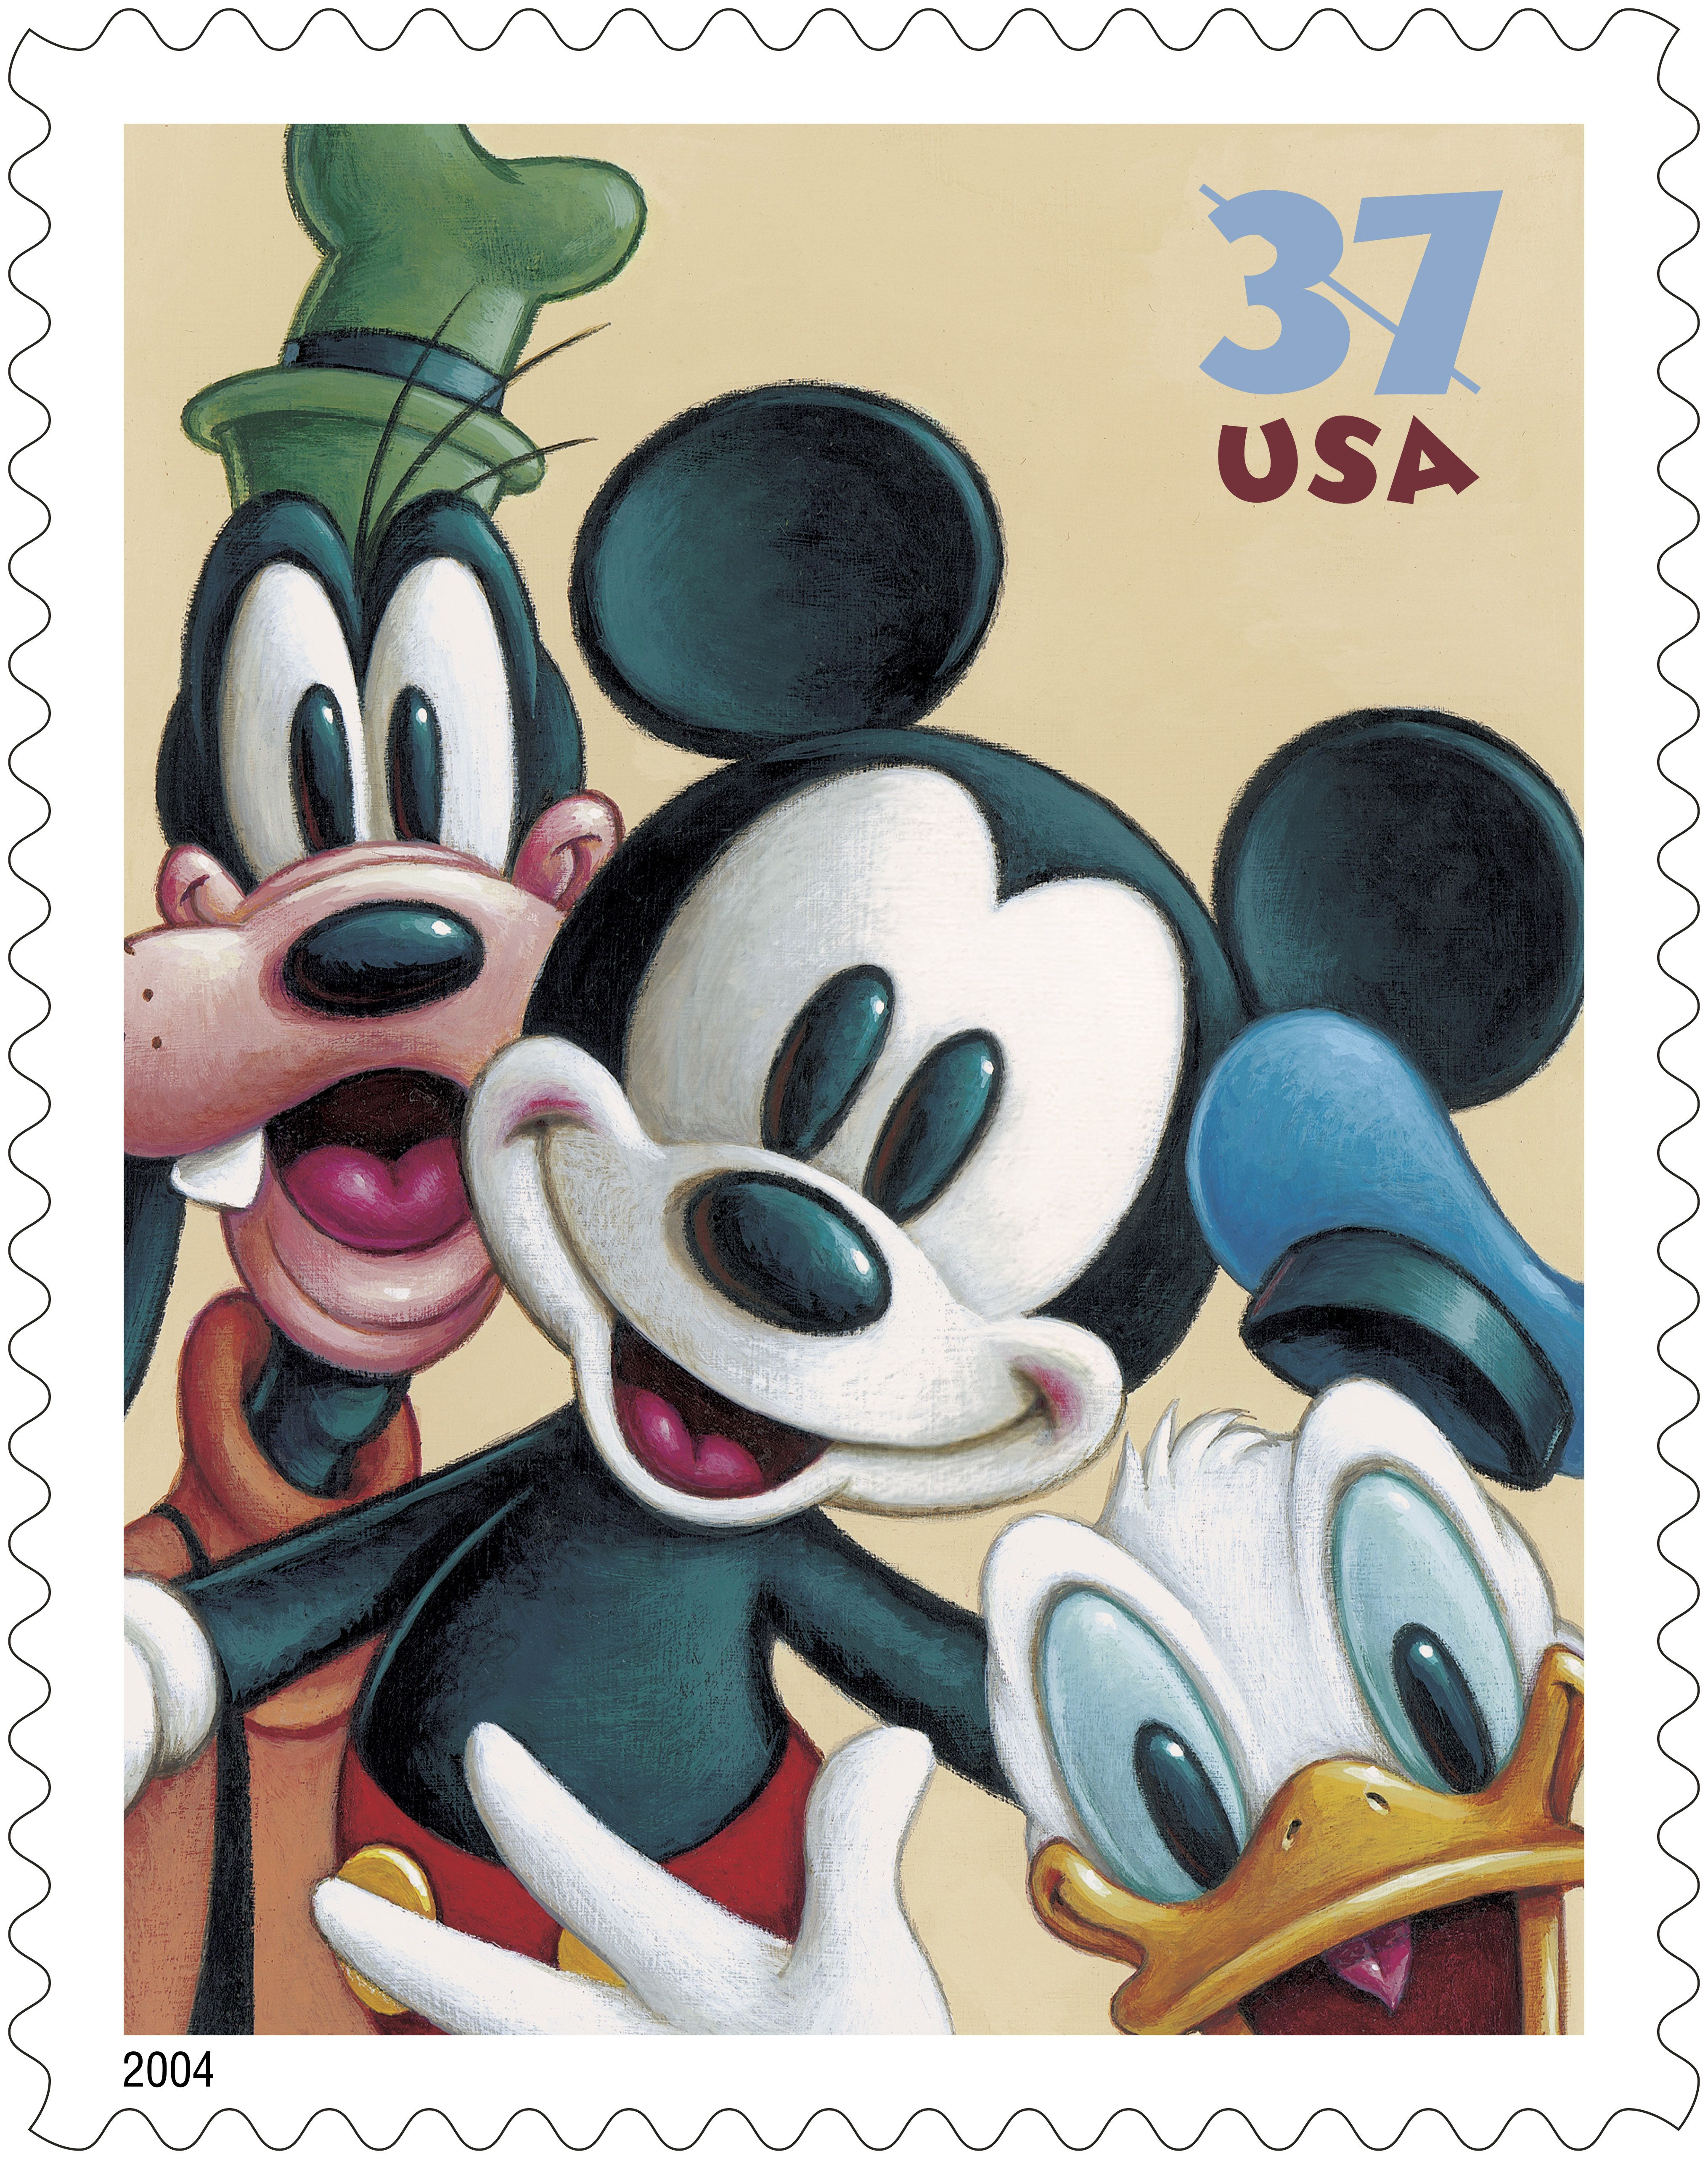 Mickey first appeared on theater screens in 1928, while